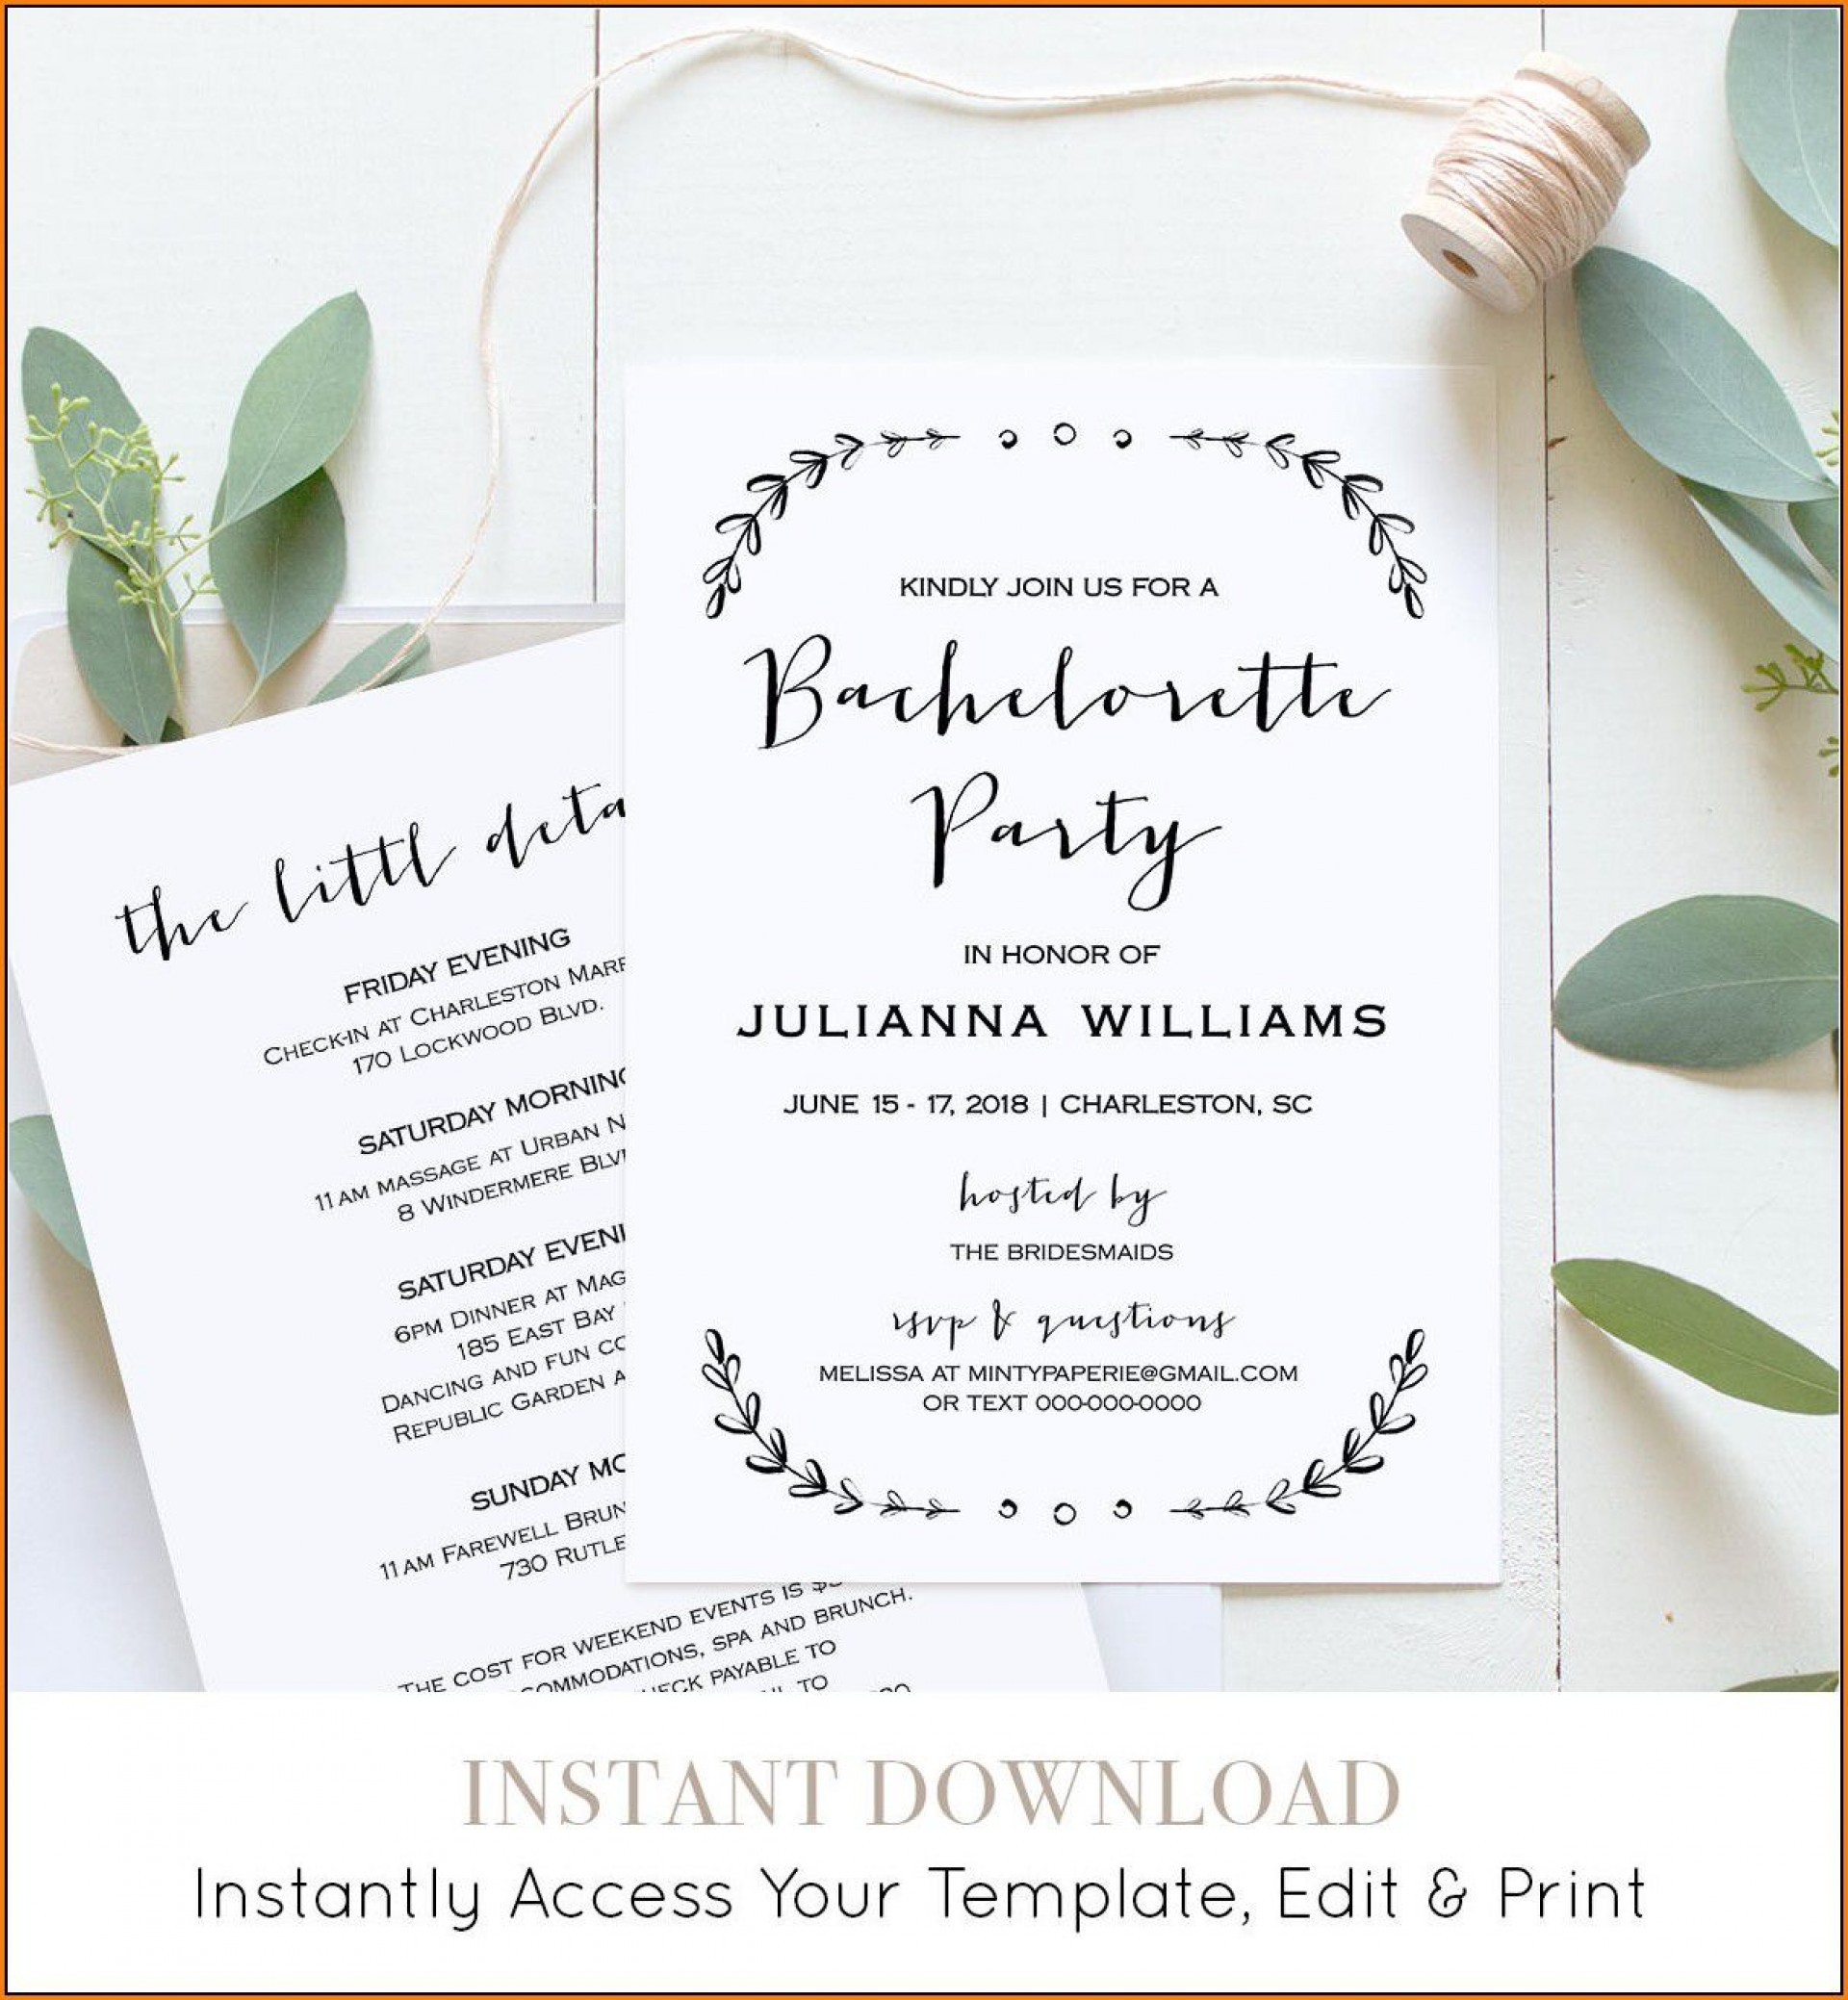 006 Excellent Bachelorette Party Itinerary Template Free Concept  Download1920